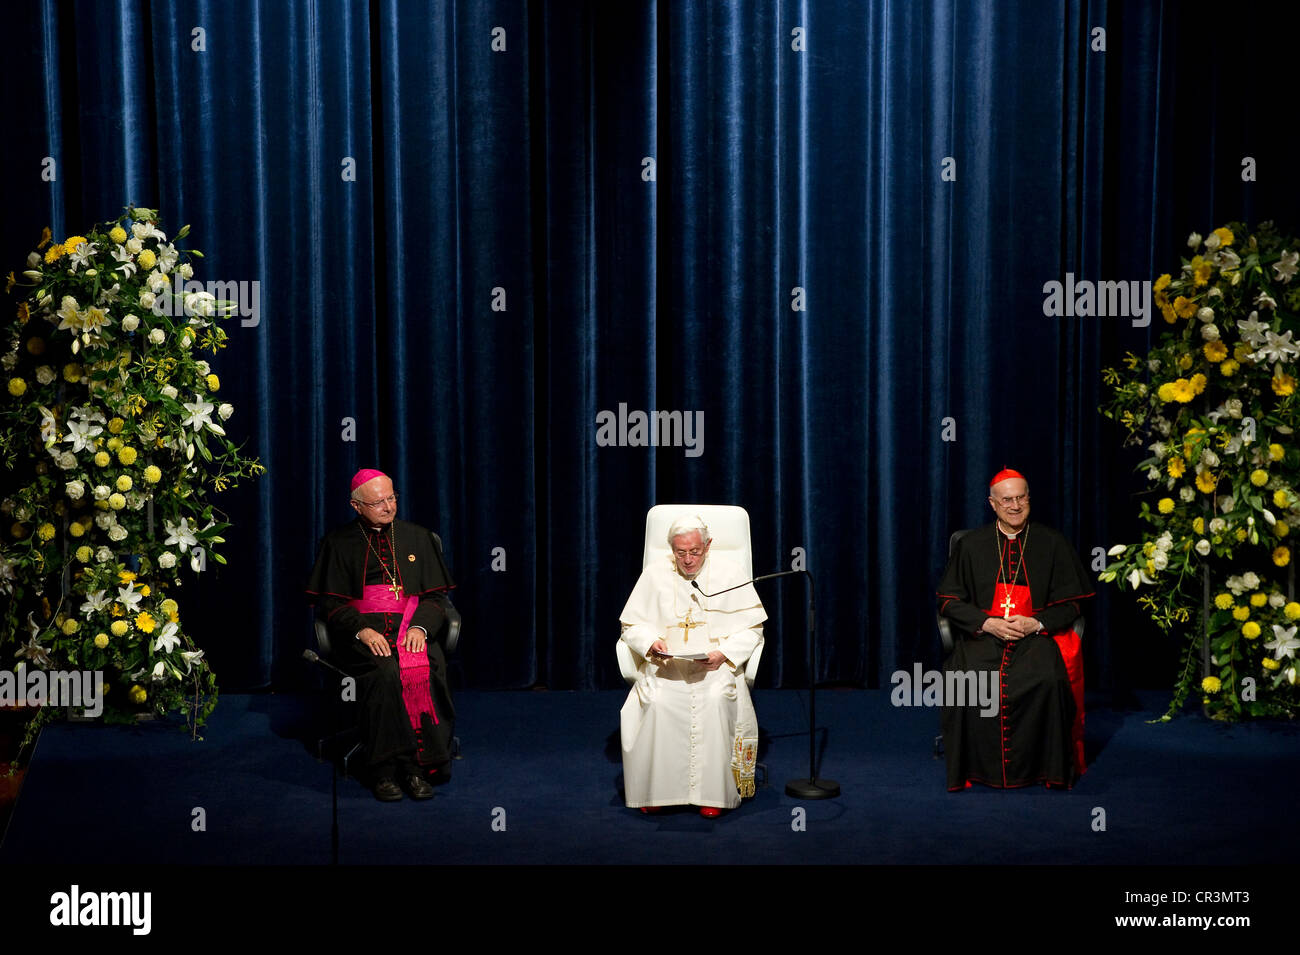 Visit of Pope Benedict XVI on 25th September 2011, speech at Freiburg Concert Hall, together with Robert Zollitsch, - Stock Image